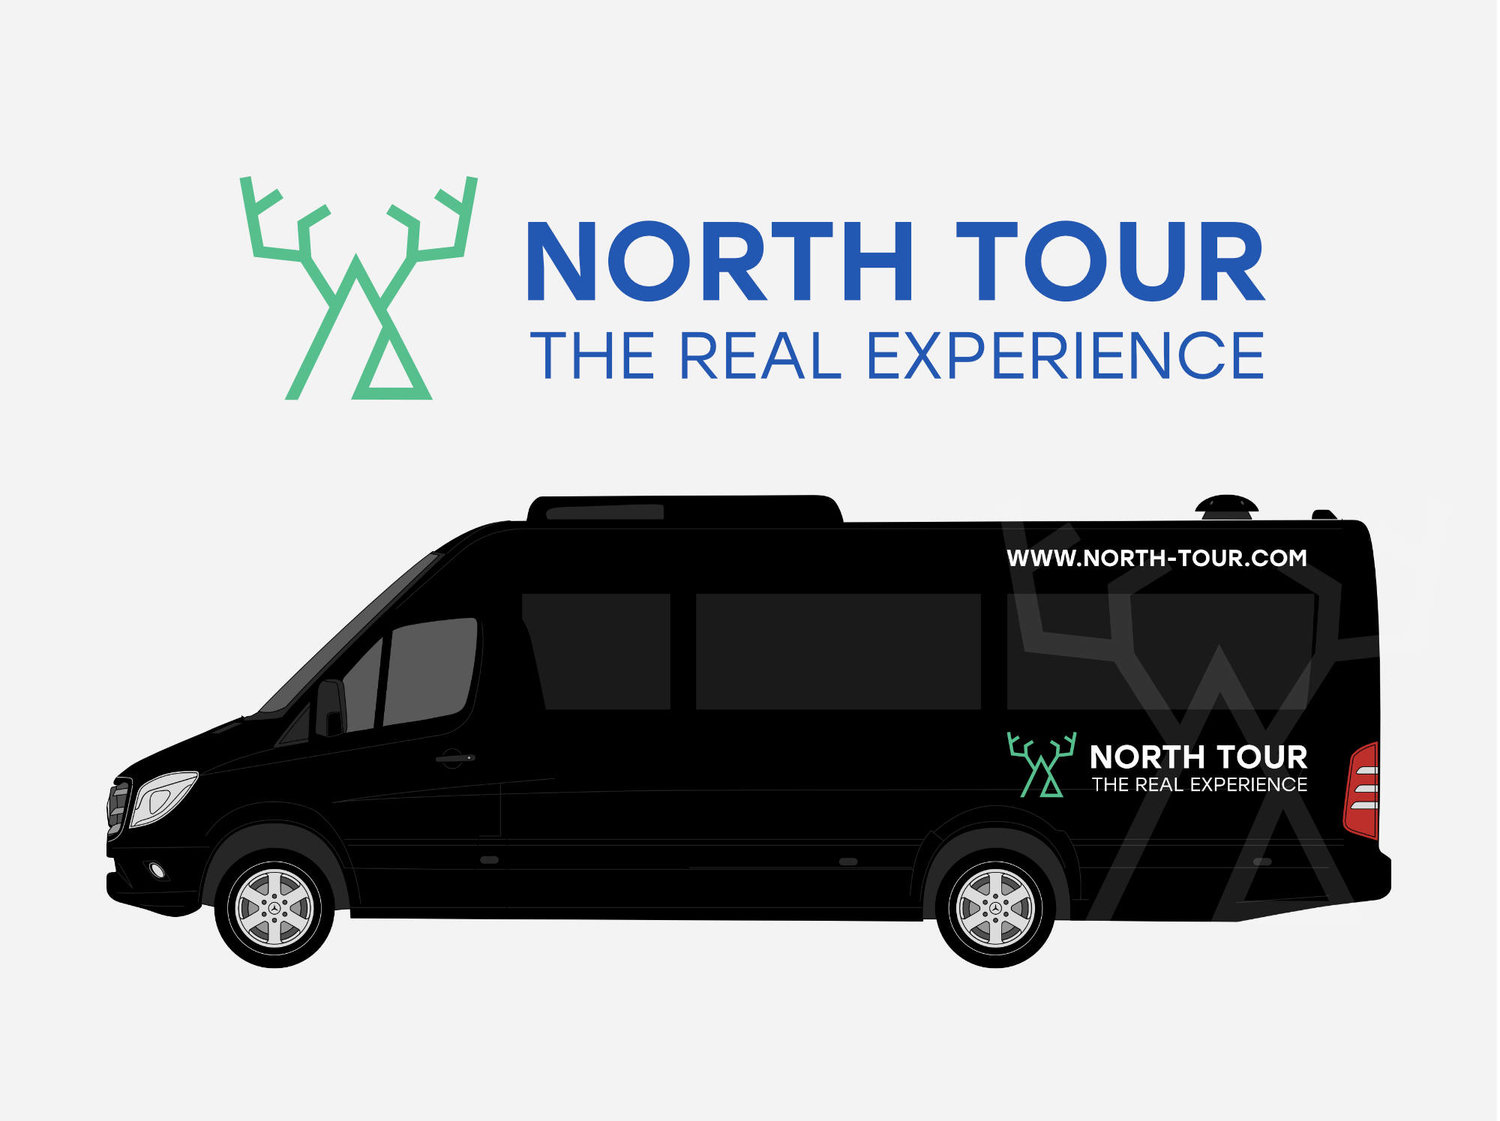 north-tour-bus.jpg